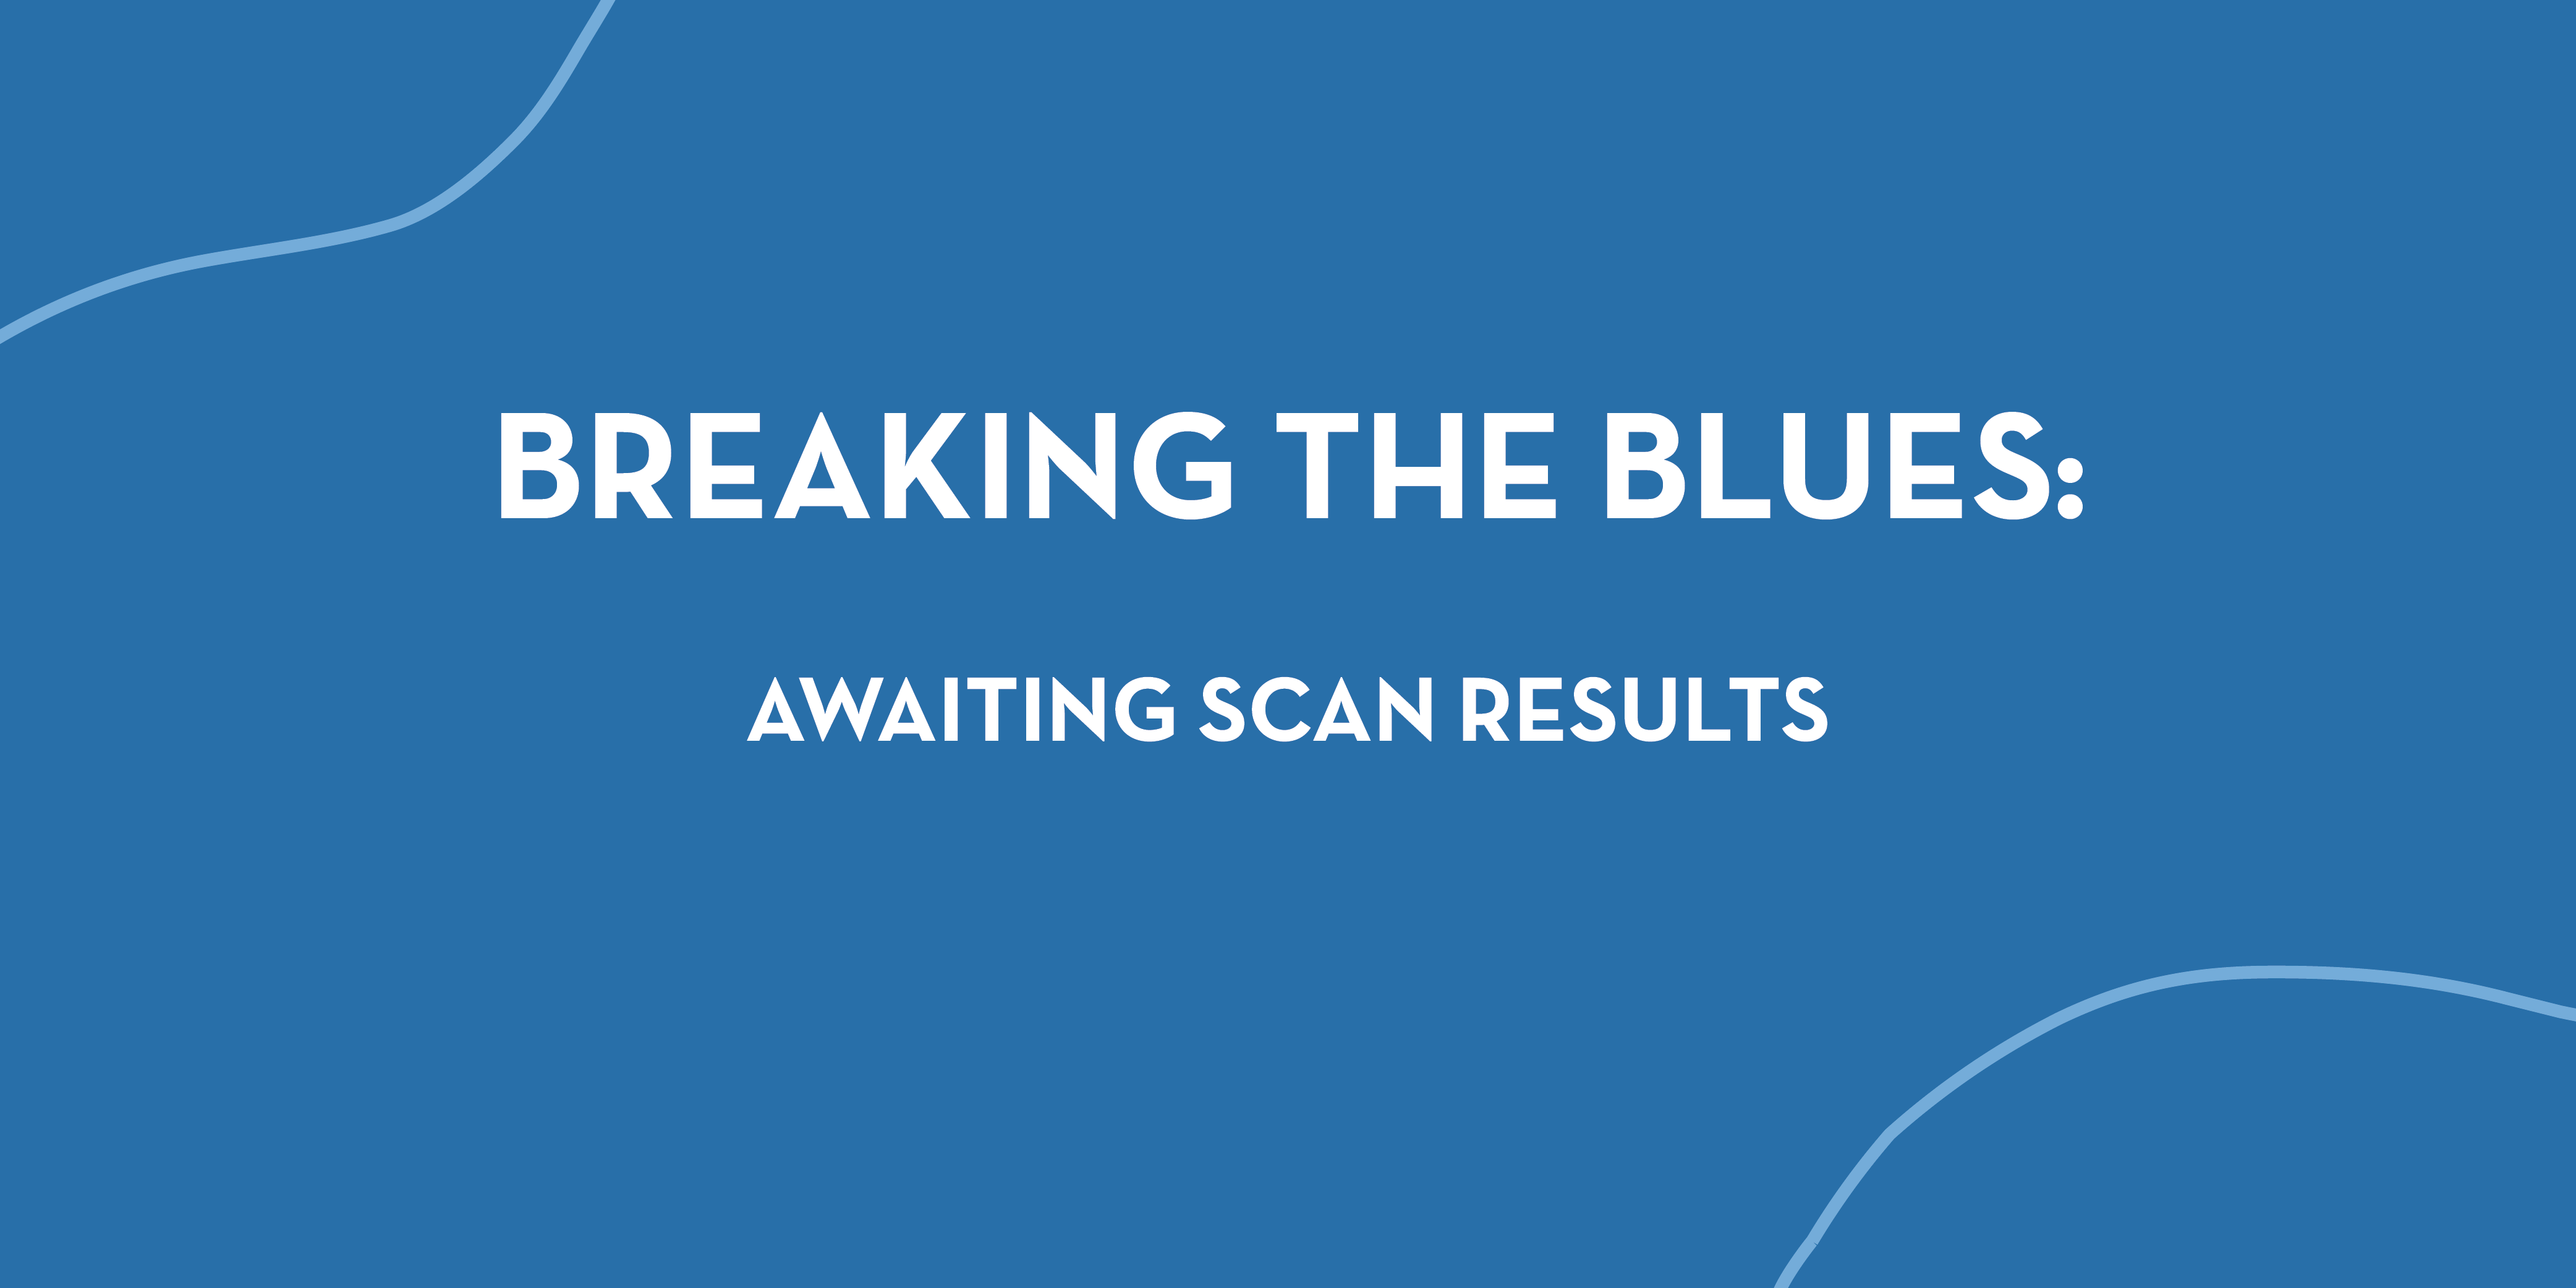 Breaking the Blues: Awaiting Scan Results